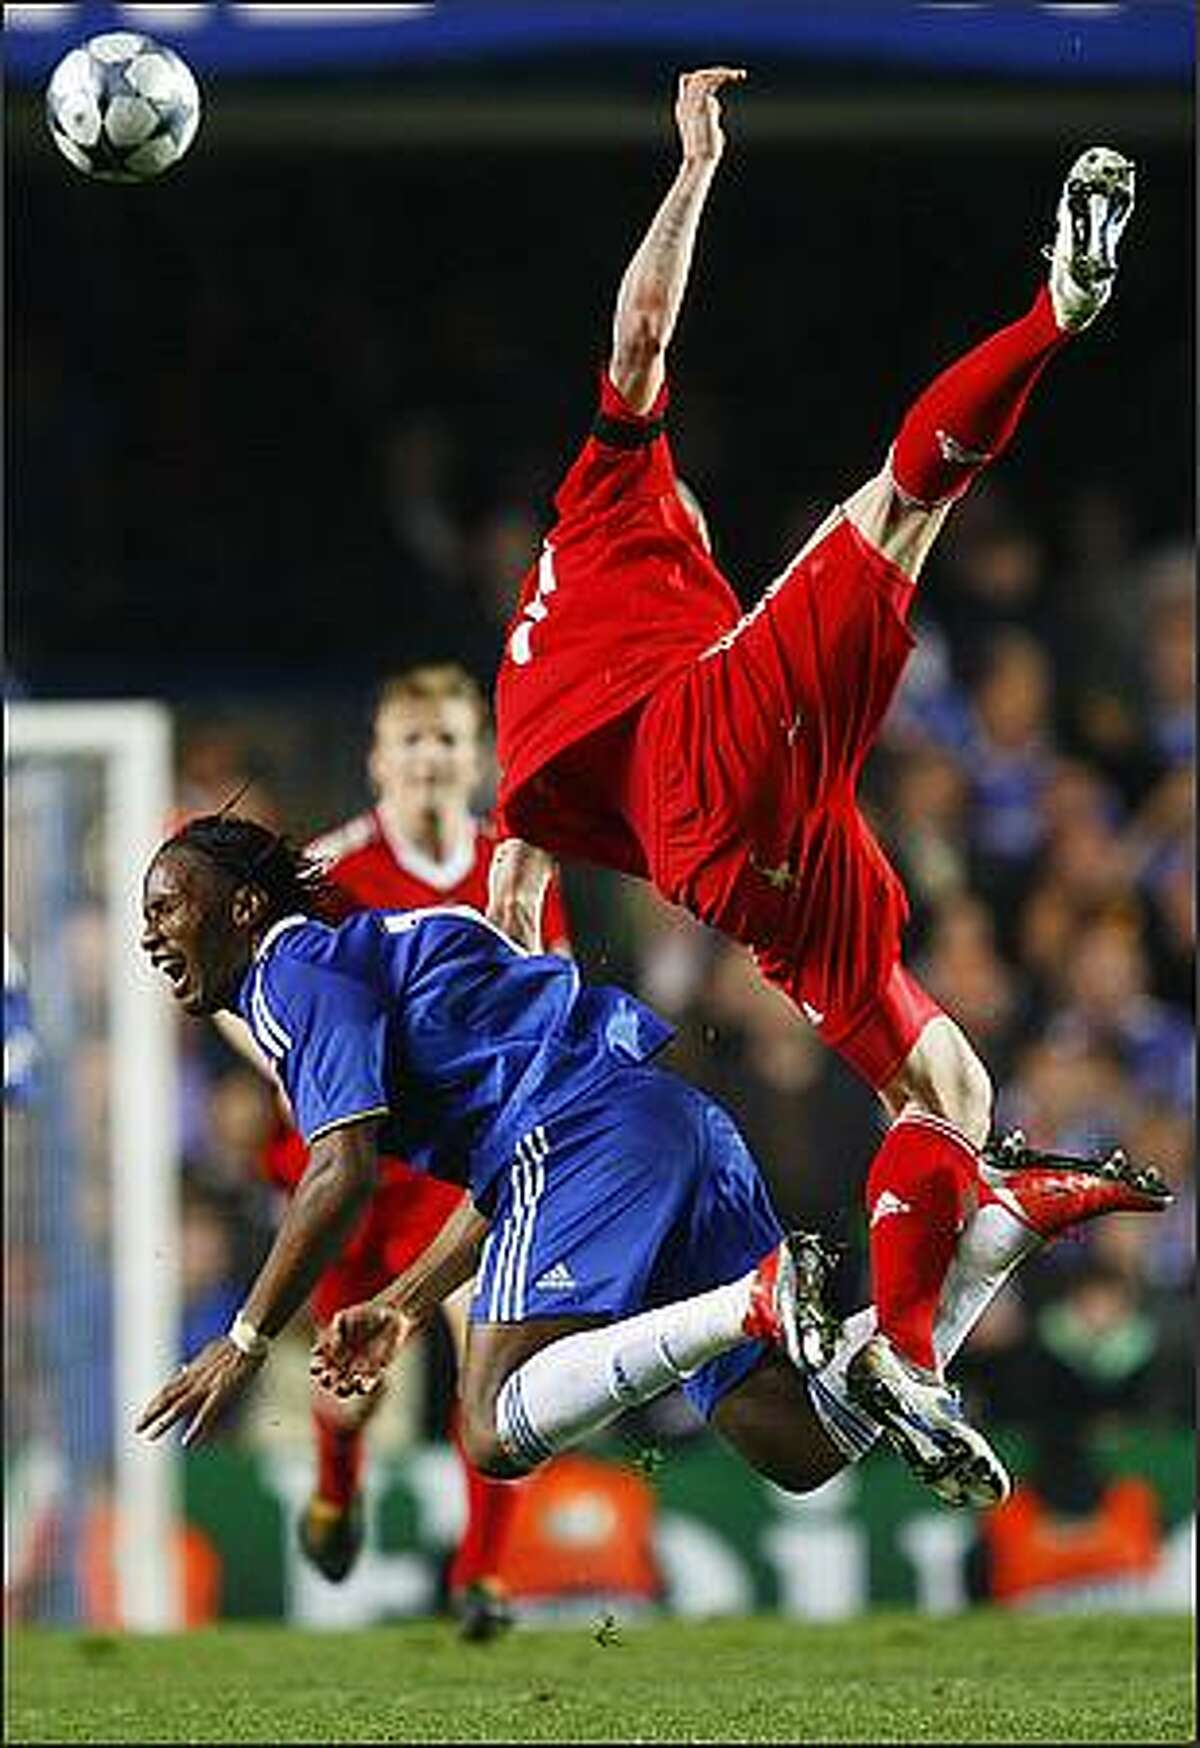 Chelsea's Didier Drogba, left, is fouled by Liverpool's Martin Skrtel during their Champions League quarter-final second-leg soccer match at Stamford Bridge in London on April 14.